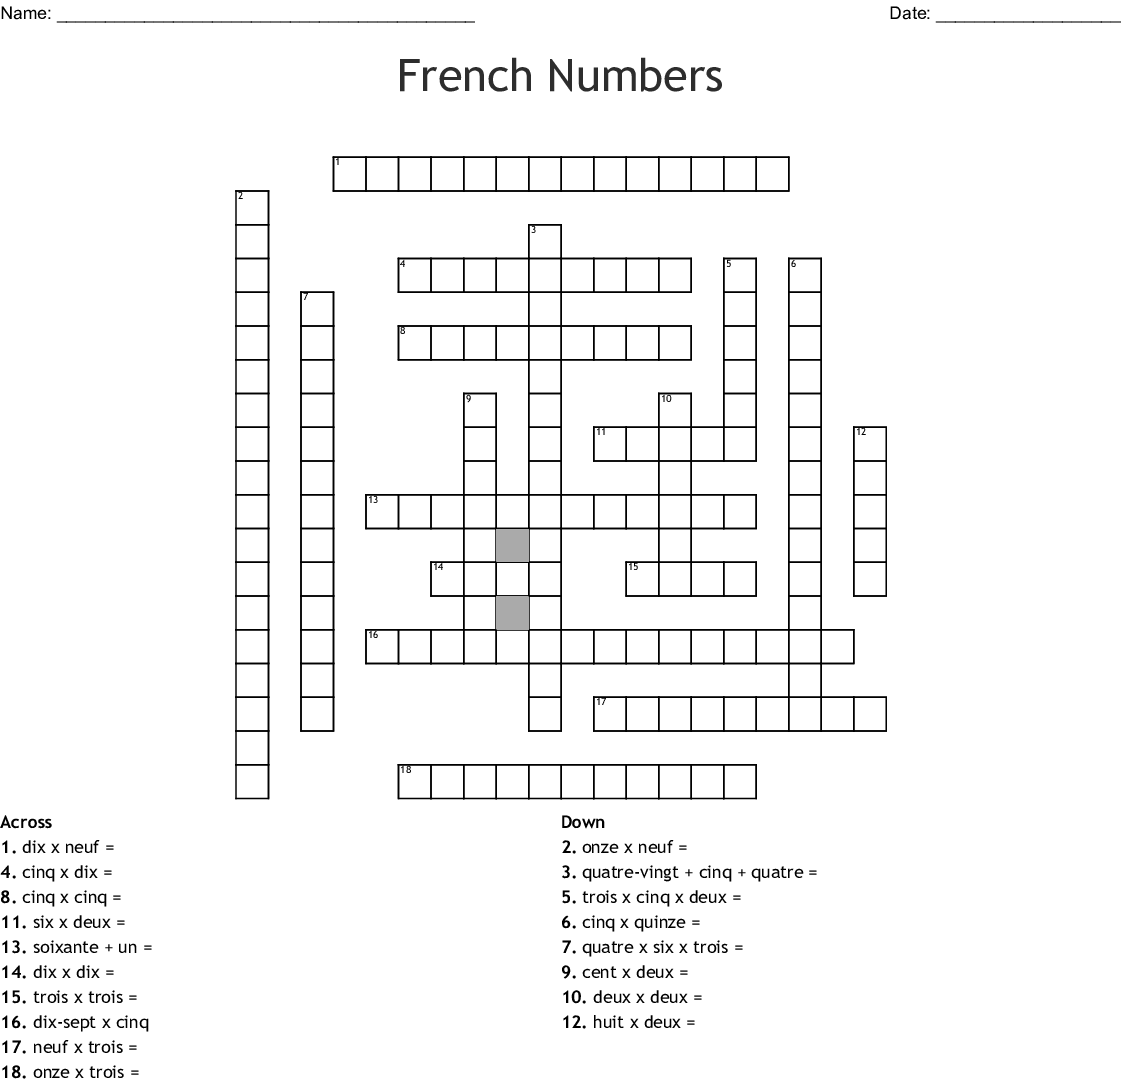 French Numbers 1 20 Word Search